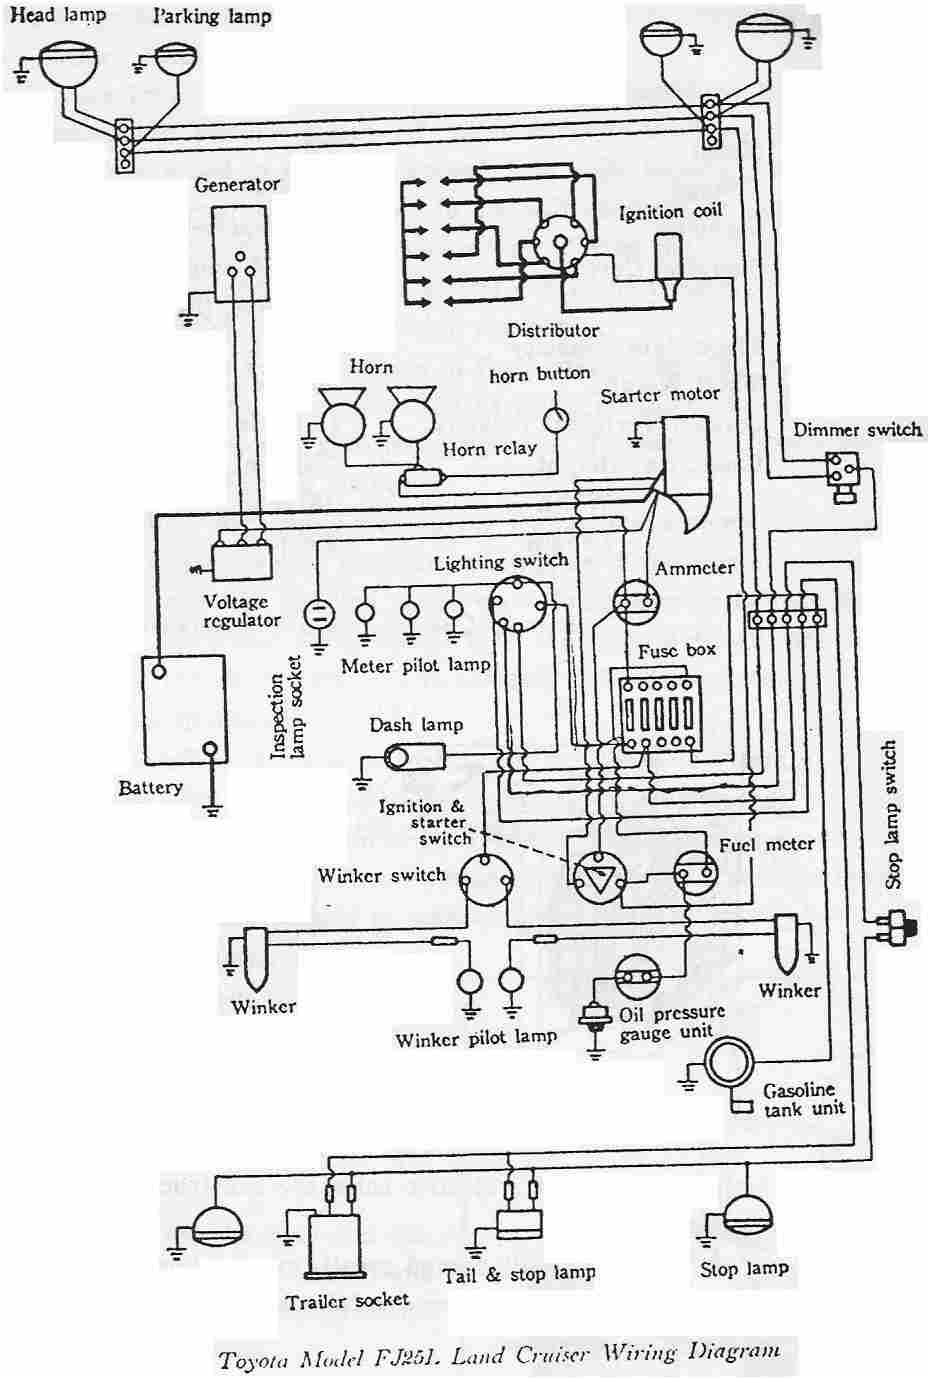 hight resolution of toyota land cruiser fj25 electrical wiring diagram wiring diagram for toro proline 724